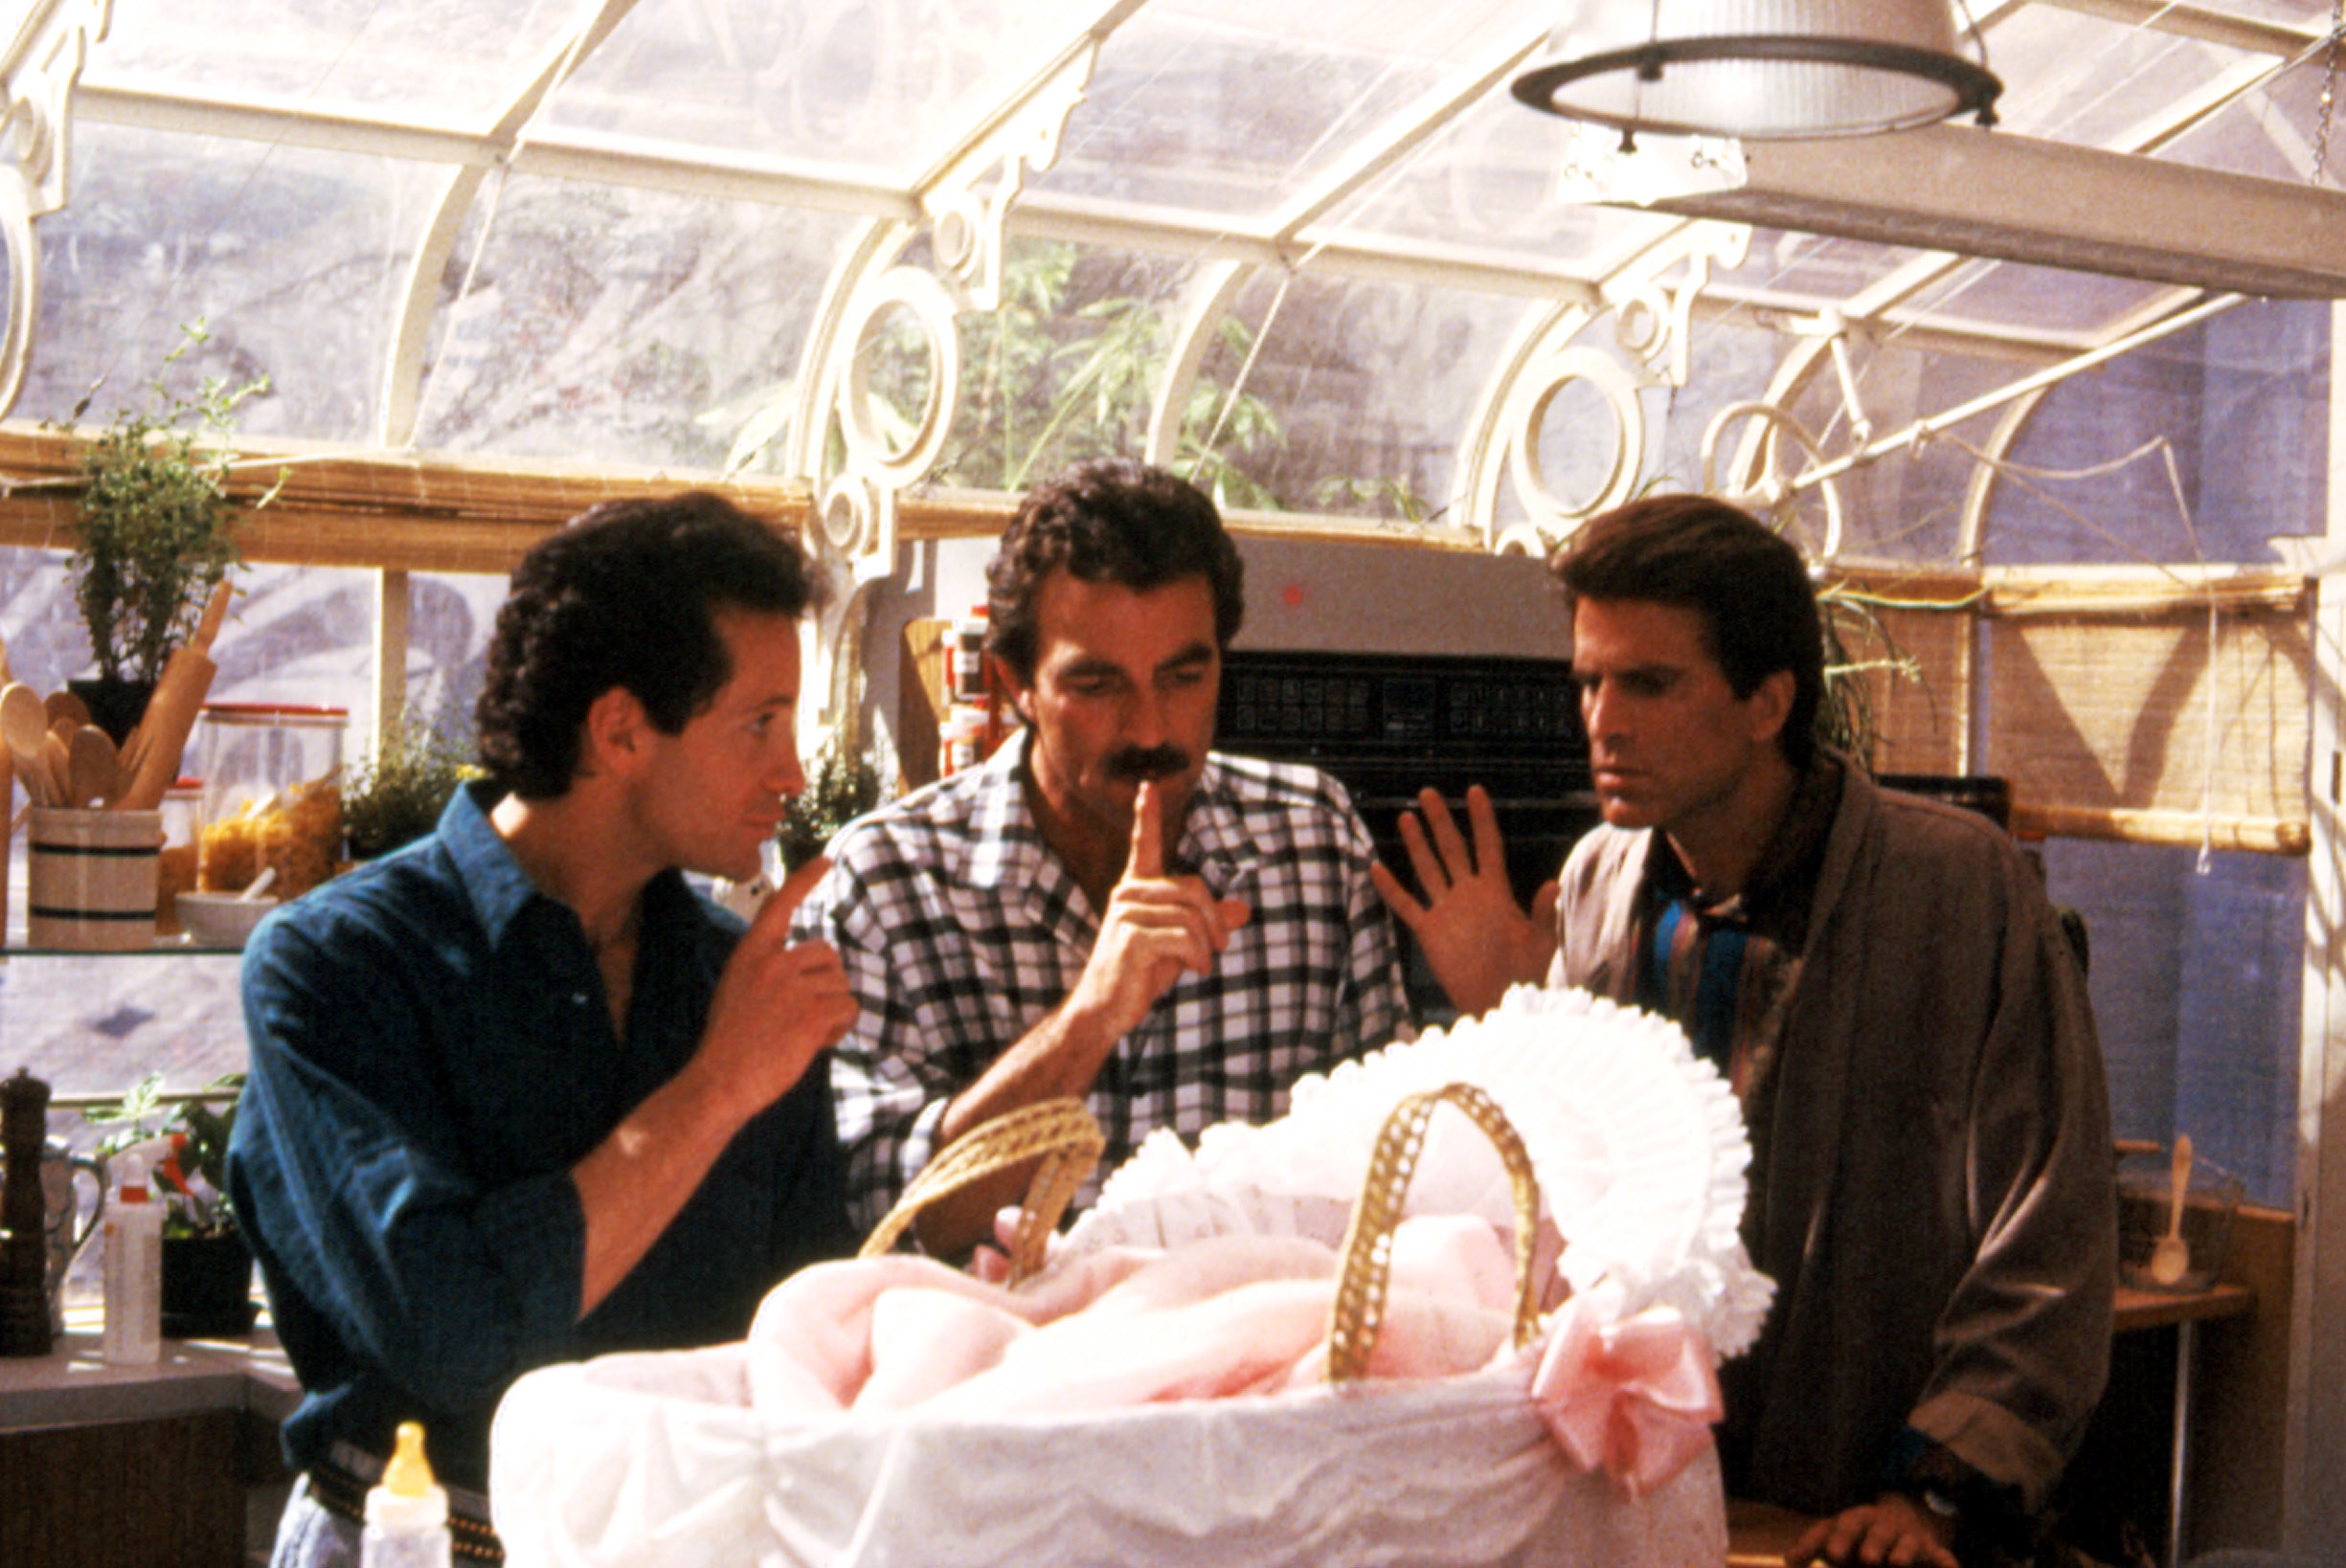 Steve Guttenberg, Tom Selleck, and Ted Danson huddle around a baby